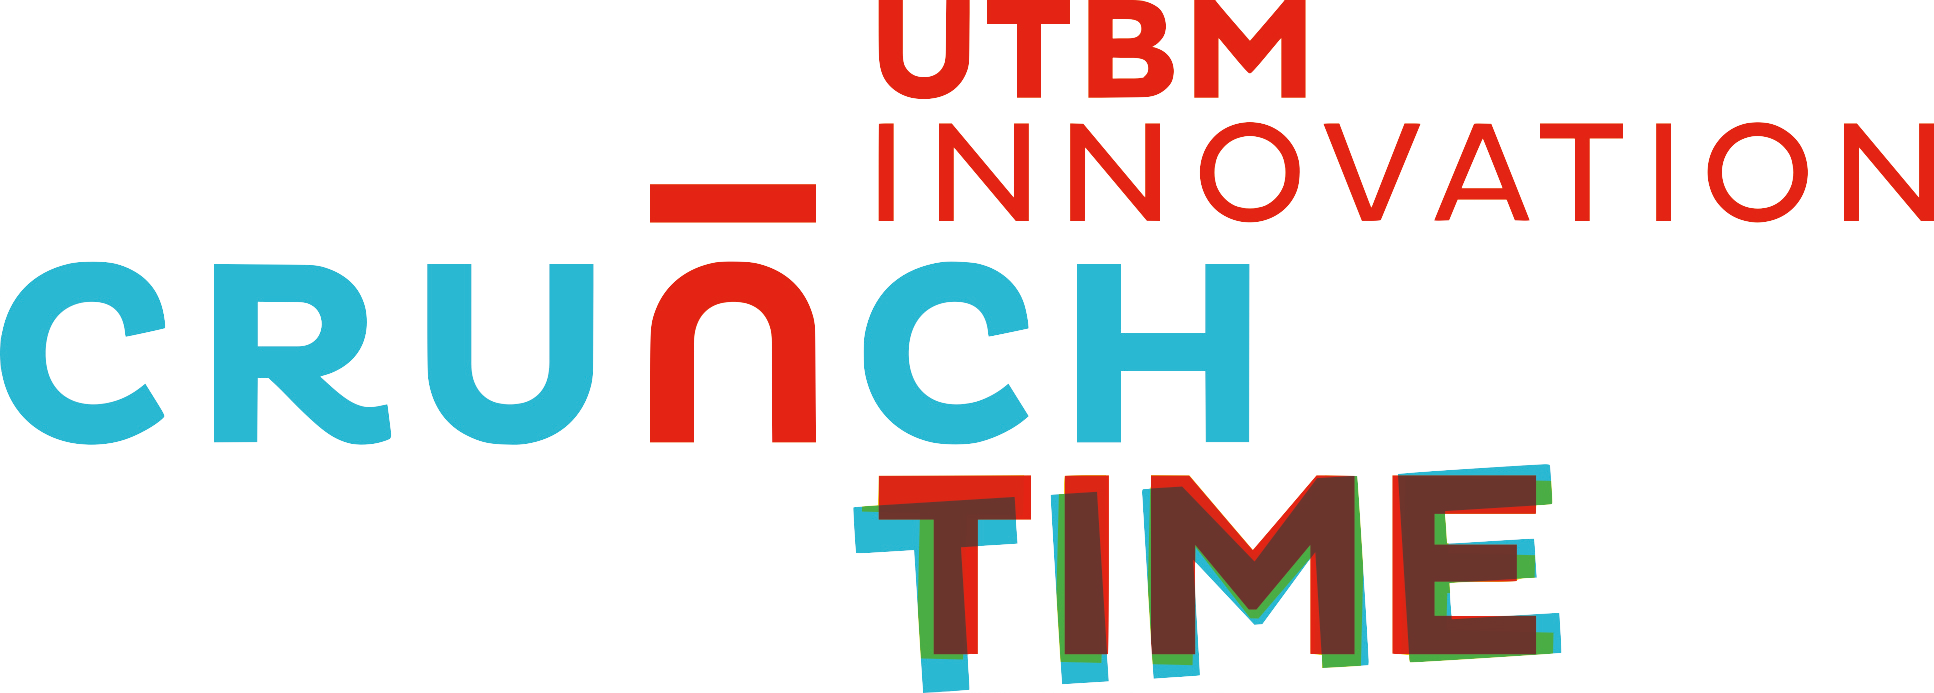 Innovation Crunch Time 2019 - UTBM - logo